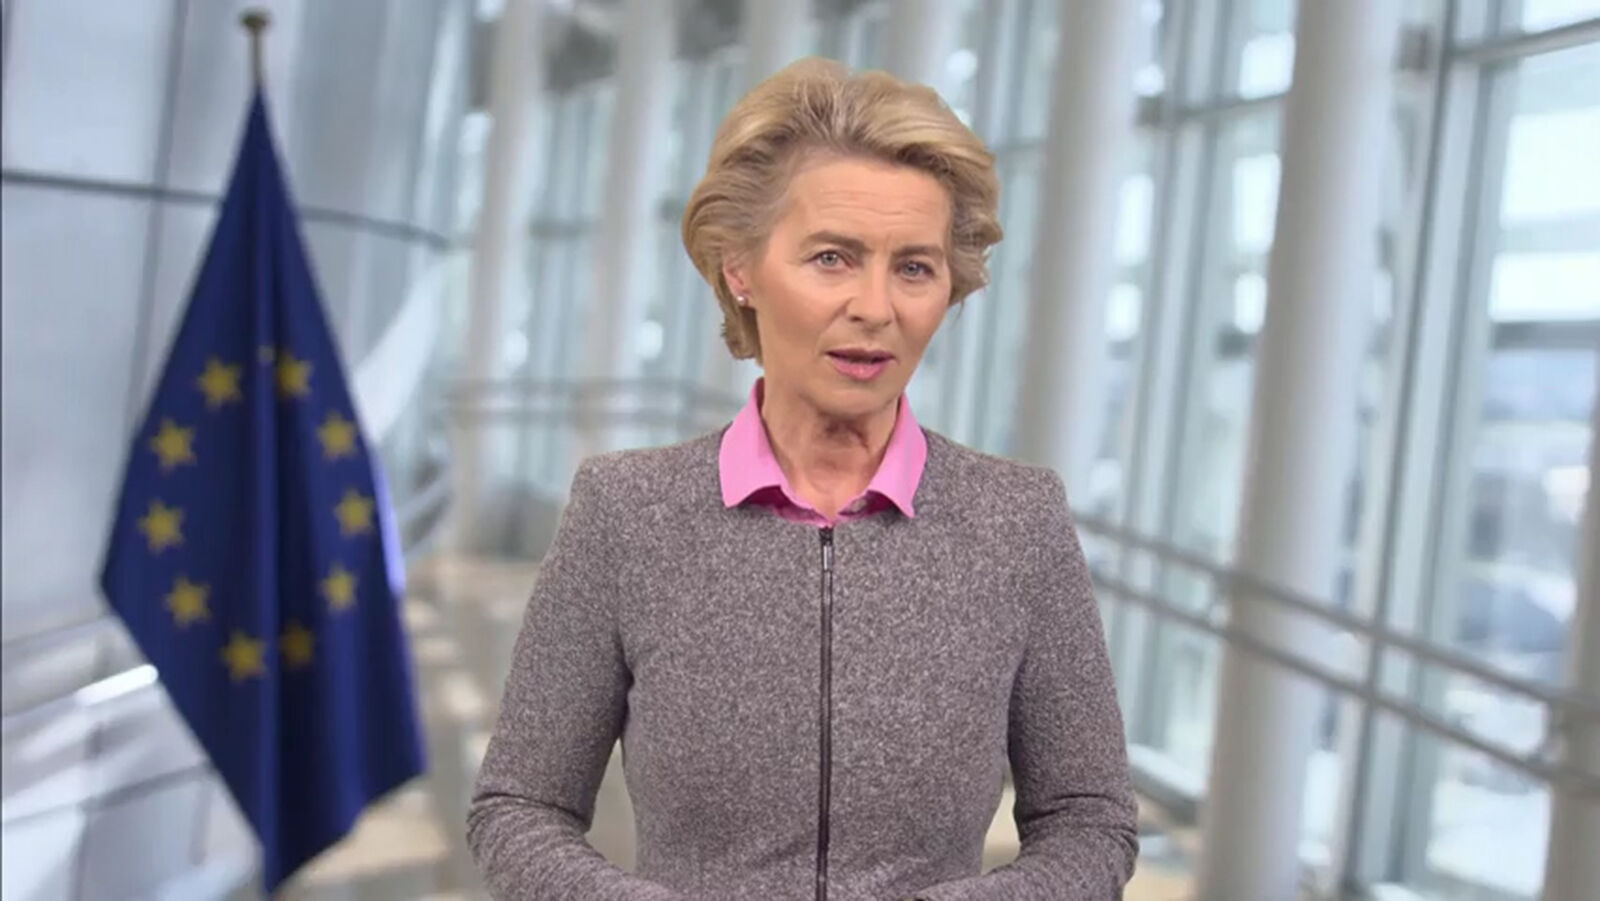 FILE: In this screengrab, European Commission President Ursula von der Leyen speaks as part of SWITCH GREEN during day 1 of the Greentech Festival at Kraftwerk Mitte aired on September 16, 2020 in Berlin, Germany. T(Photo by Getty Images/Getty Images for Greentech Festival)